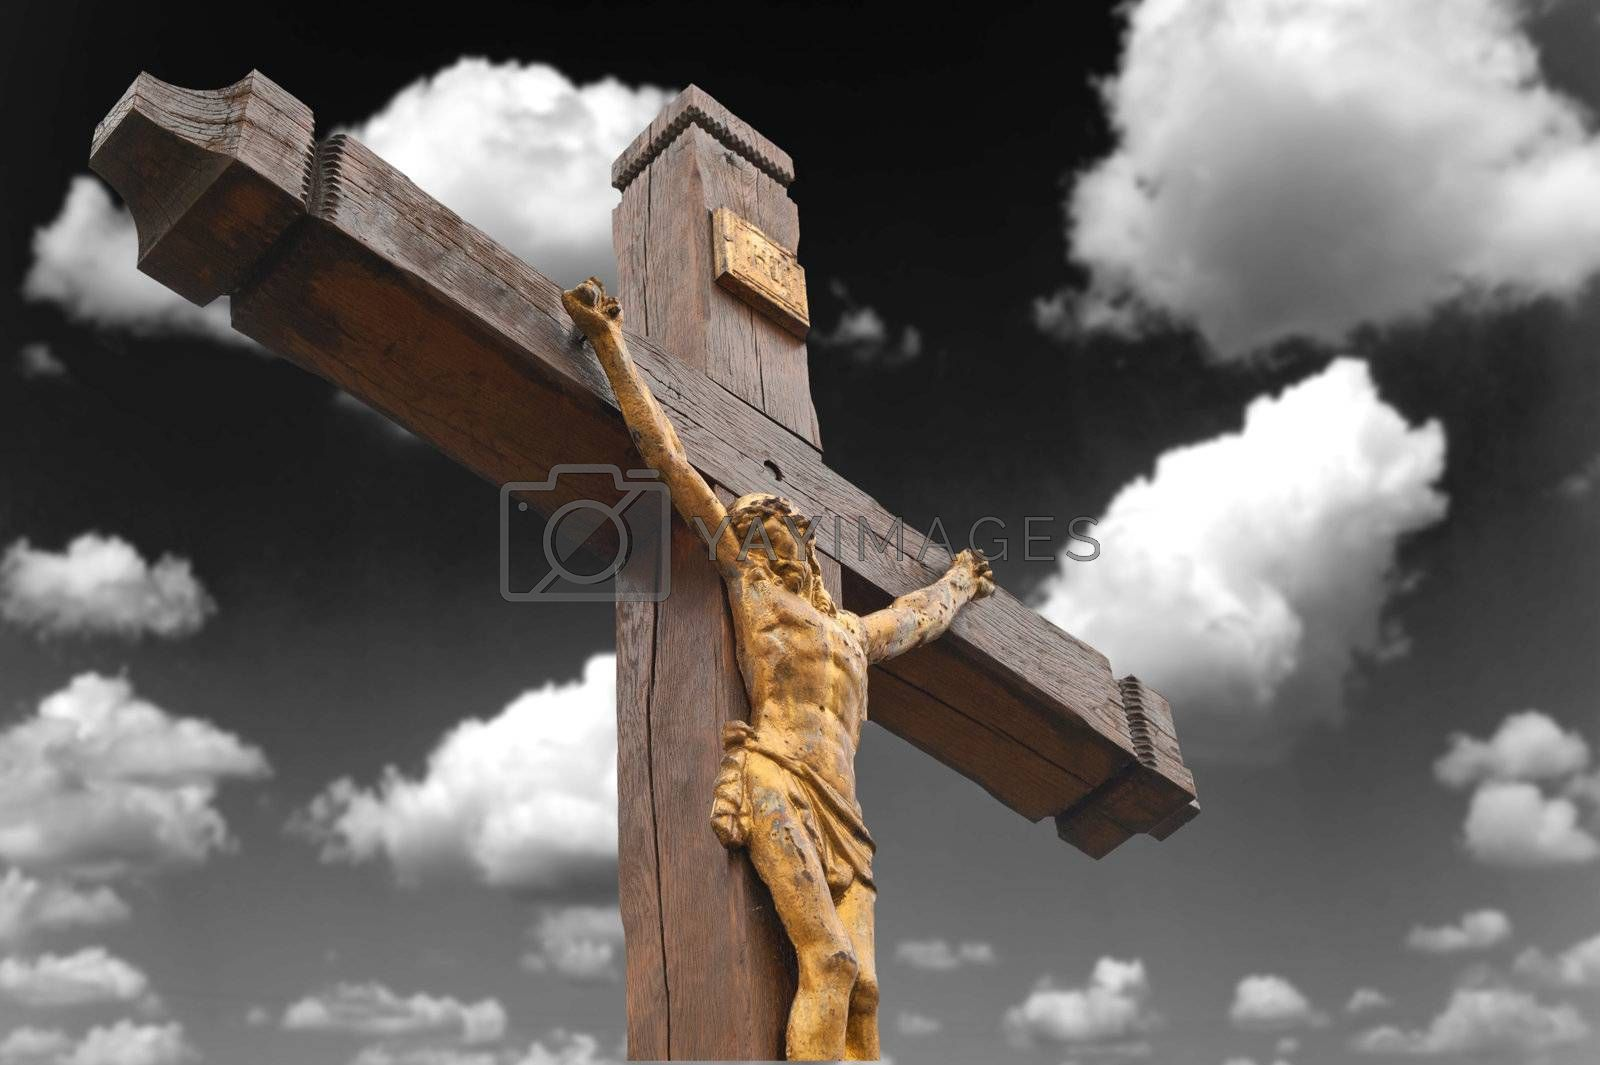 The crucifixion from a tree with Jesus's gilt figure. Drame sky